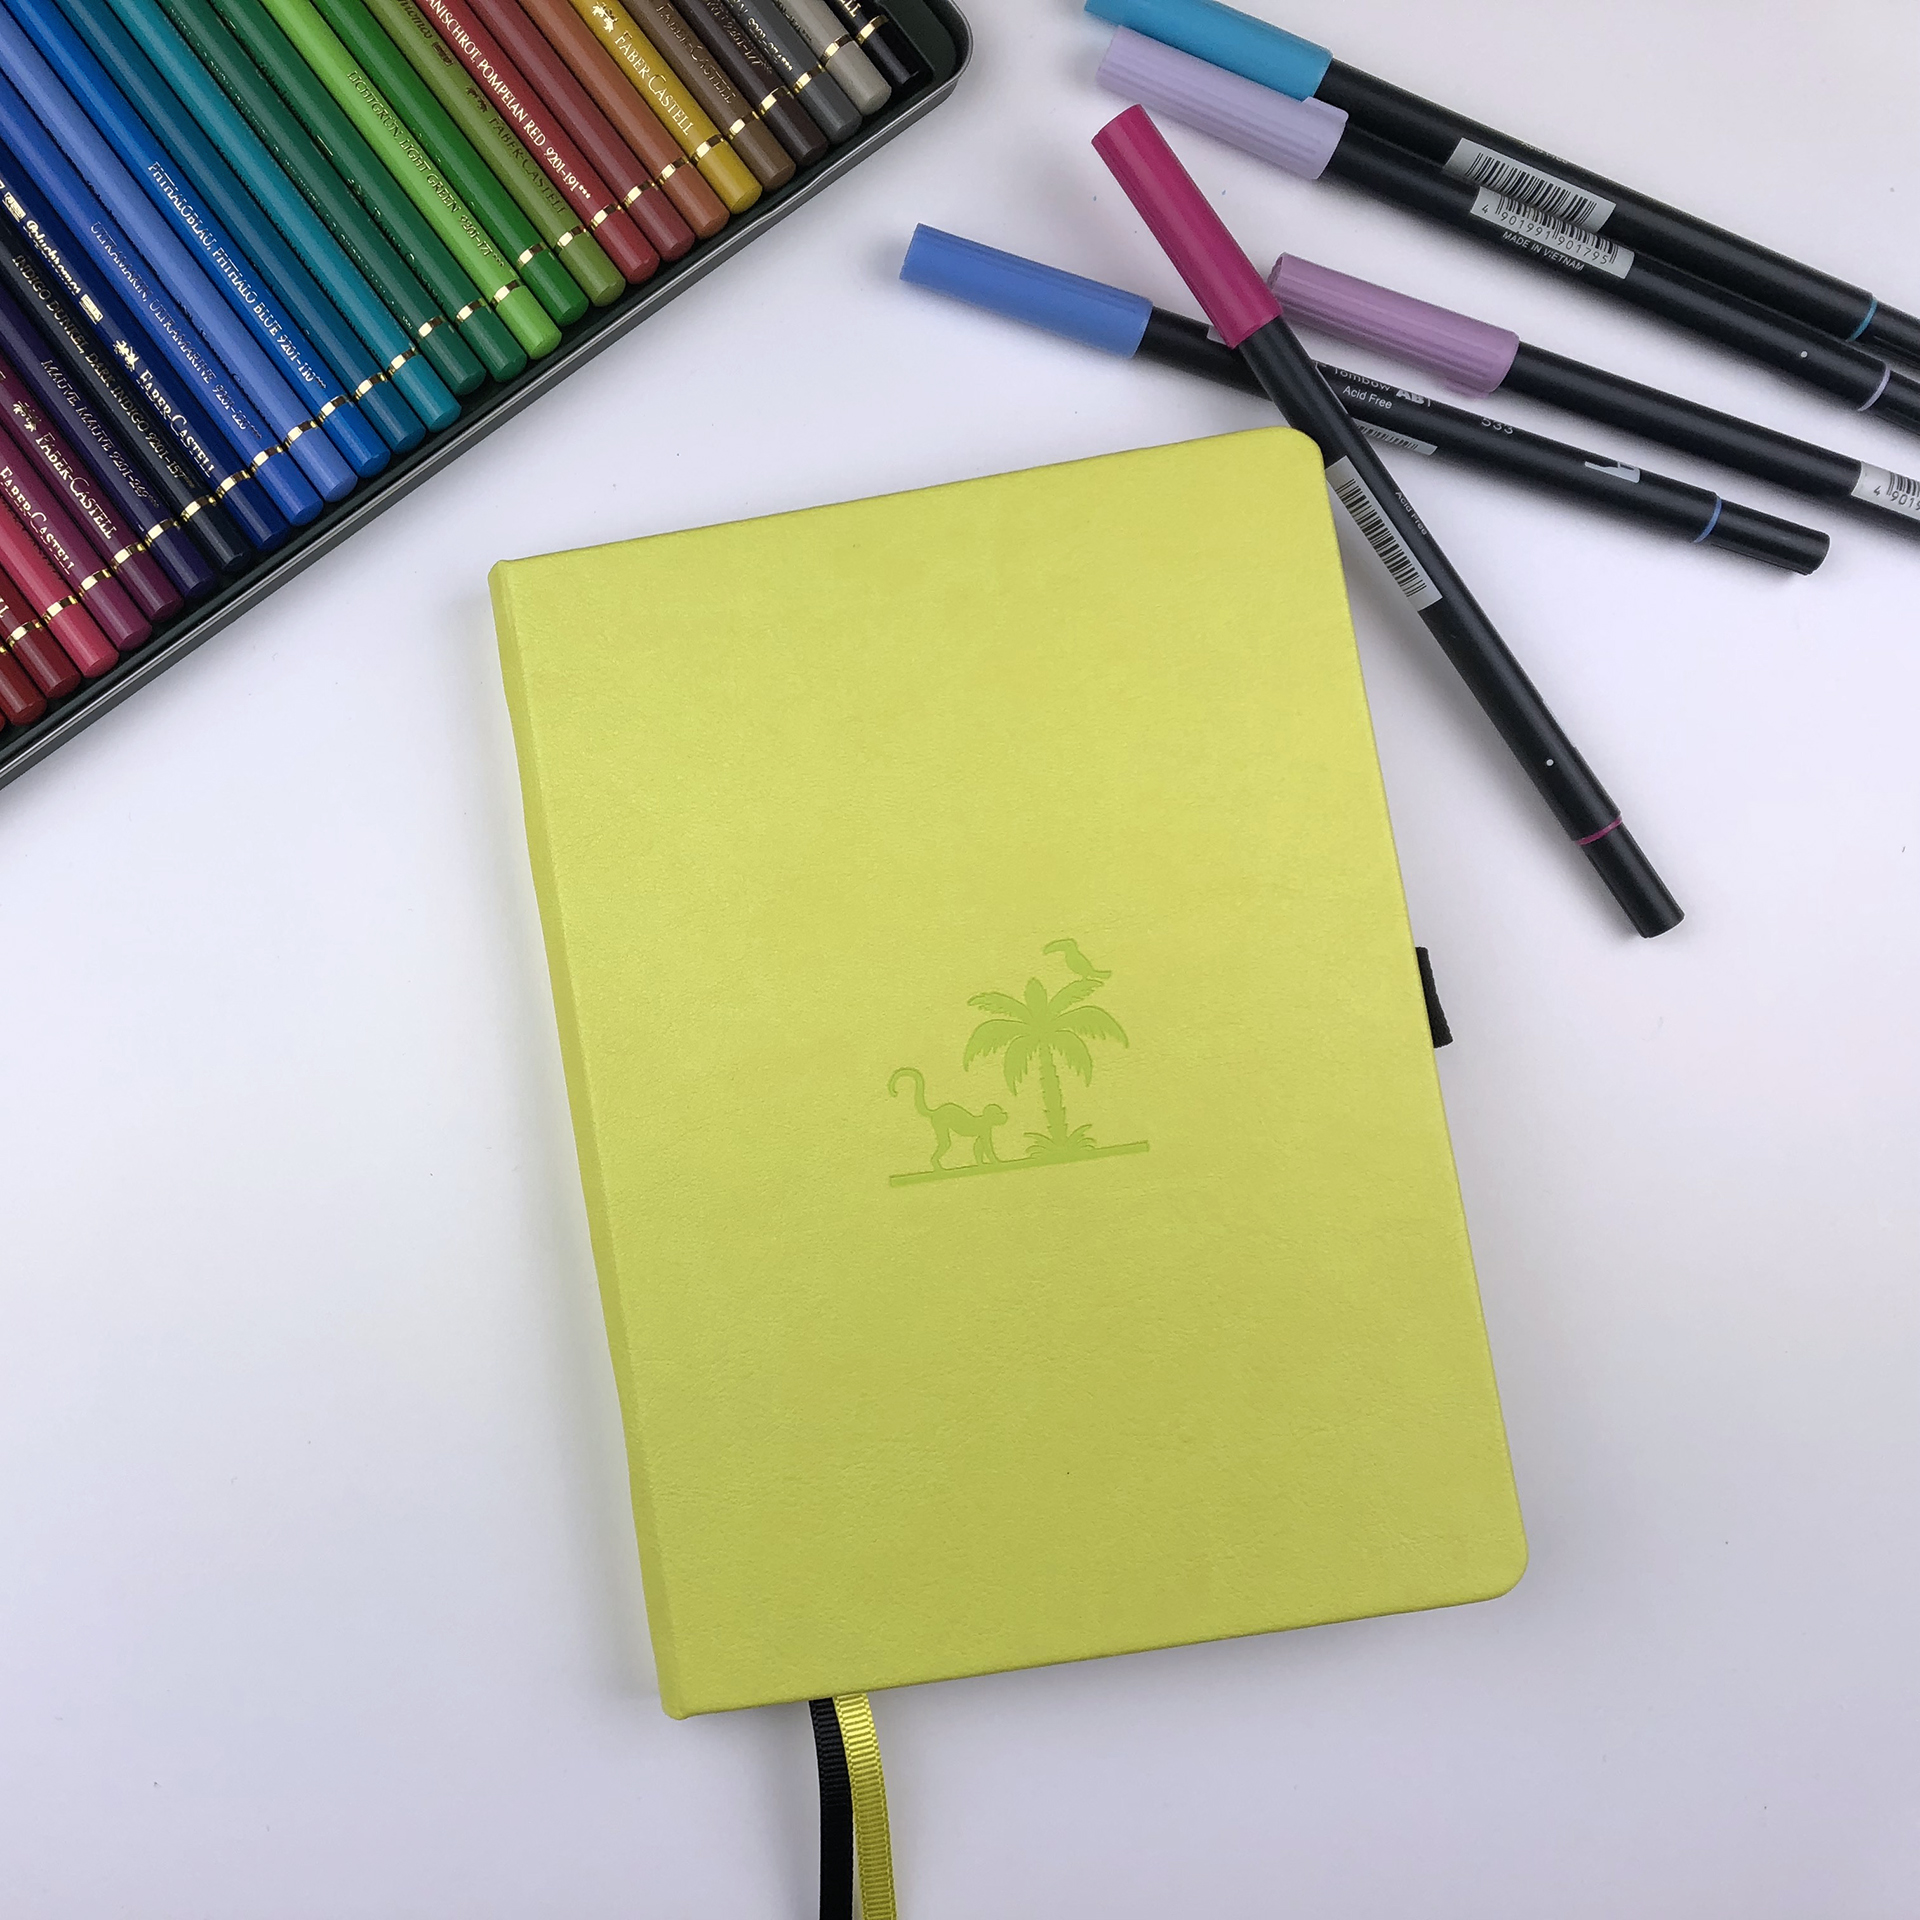 Setting Up my Bullet Journal for 2019